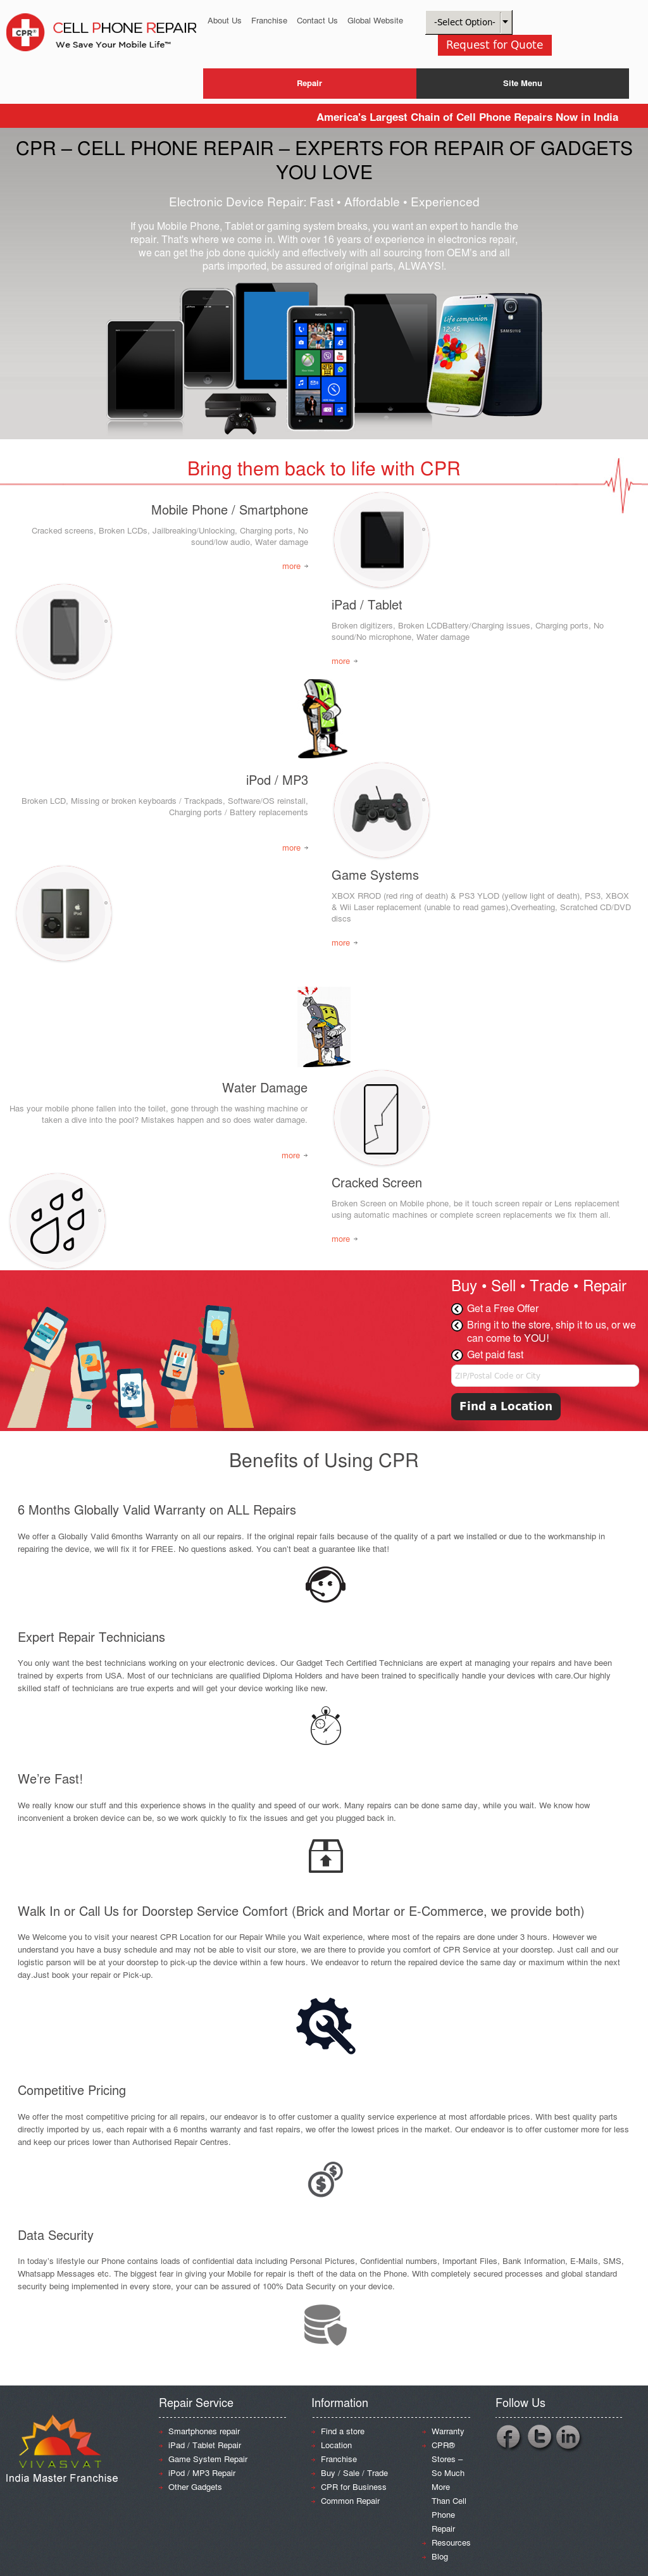 Cpr Cell Phone Repair India Competitors, Revenue and Employees